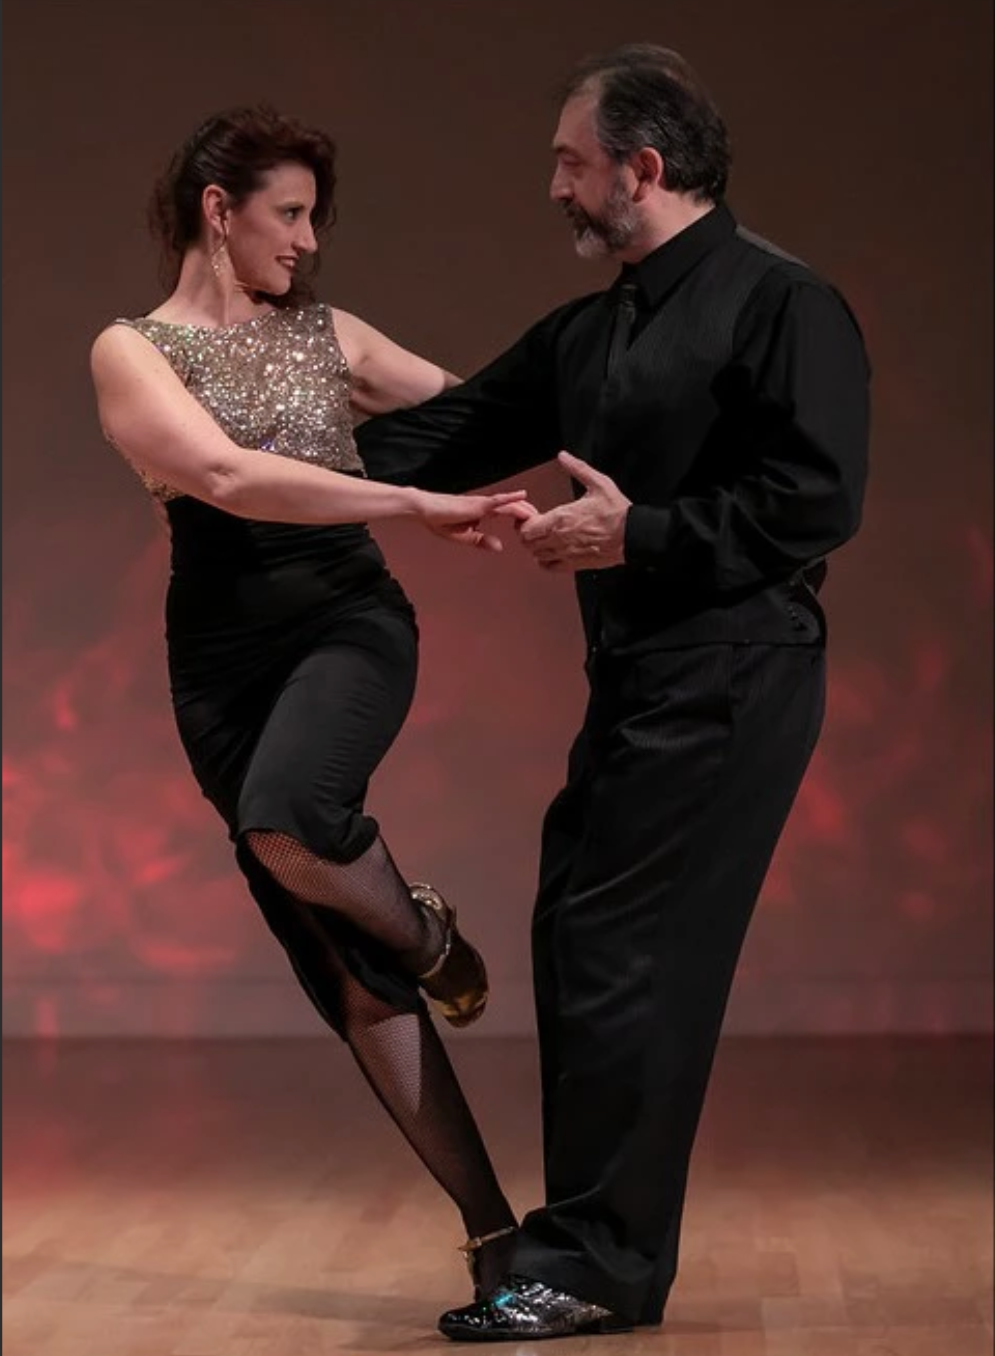 """Gustavo Naveira & Giselle Anne met in 1995 and formed a tango couple, bringing together their already-vast experience with the dance. - Together, they have successfully performed in the most important tango festivals around the world (throughout Asia, the Americas and Europe). They have also performed in the most typical milongas and theaters in Buenos Aires and abroad. Since 2003, they have been teaching in the """"tango seminar"""" format, a method which they created to enable students to genuinely progress in their dance.Gustavo Naveira deserves more credit for the resurgence and renewed popularity of tango (from the 1980s through today) than any other dancer /teacher /performer /choreographer. Since discovering the dance in the early 1980s, Gustavo has worked tirelessly to bring tango to new audiences, to evolve the dance to a higher level of technique and of structural complexity, and to develop a pedagogy that makes dancing tango at a better level possible for more people. He has also strived continuously to insure that further development of the dance be grounded in a solid historical foundation. For this reason, his dancing always has a classic look, even while he is executing the most modern and surprising steps. As early as 1999, the main Argentine newspaper Clarin stated, """"you could say that three stylistic tendencies contend for supremacy [in tango]: Urquiza's style, Almagro's style and Naveira's style.""""Giselle Anne has demonstrated her abilities as a dancer and choreographer by performing in shows such as Tango Argentino, Tango Pasión, Mariano Mores, and Los Solistas de D'Arienzo. She has performed in America, Europe and Japan. During the five years of her residence in Spain (1992-1997), she worked intensely with tango, creating her own ballet, founding a school and inaugurating the """"Casa del Tango"""" (Tango House) in Sevilla.Now with 25 years of experience, the presence and solidity of her dance are balanced perfectly with the beauty of her movements, and this"""